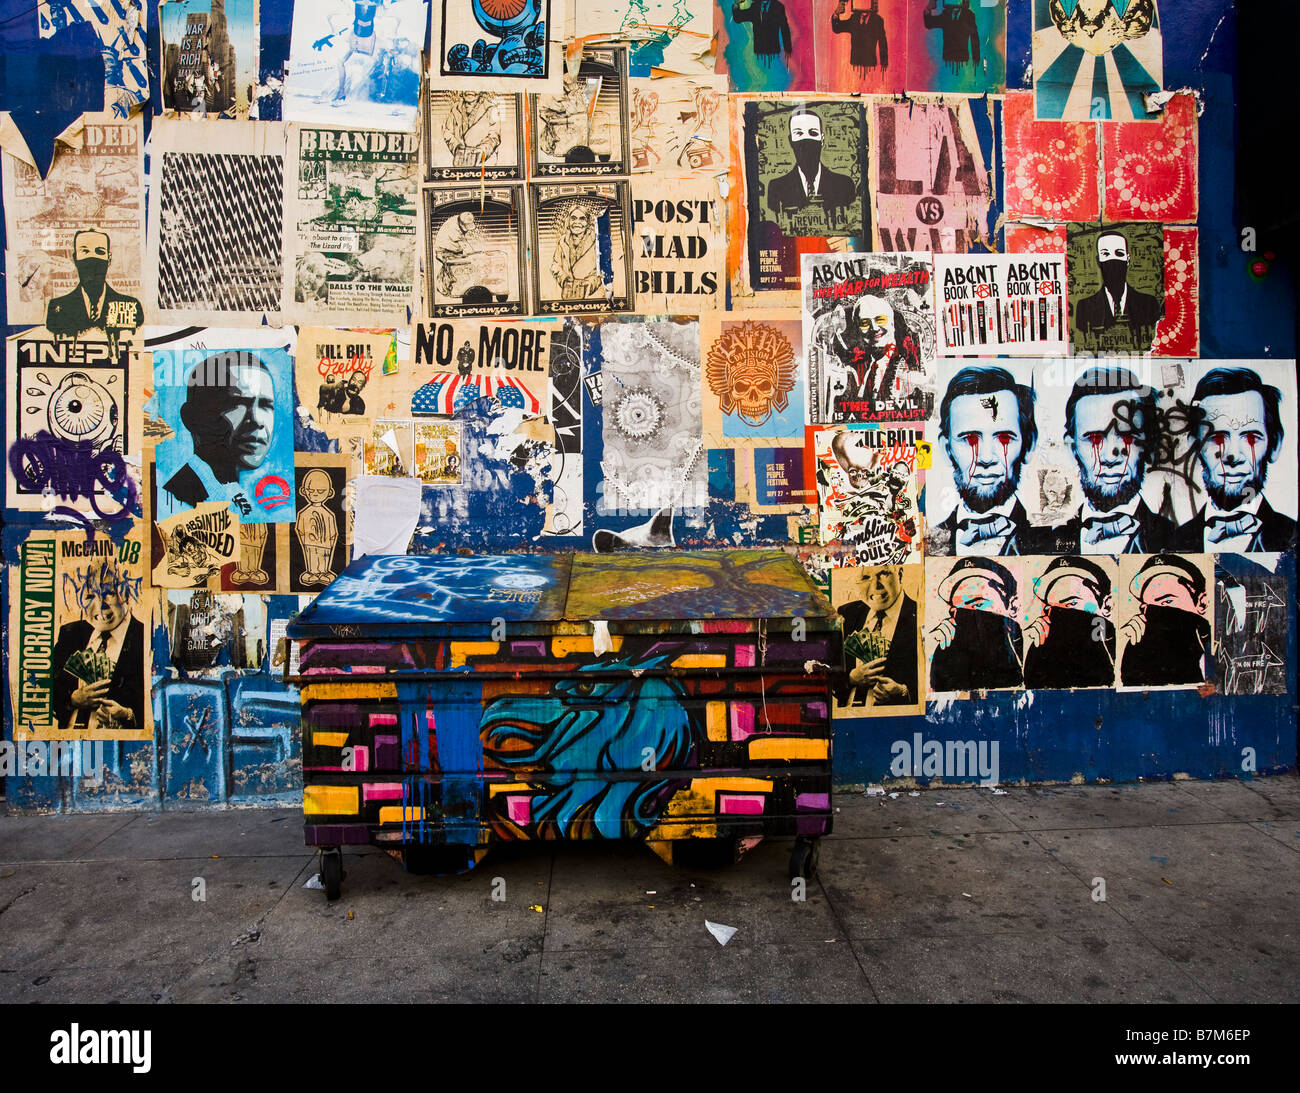 Obama posters on a wall in the Arts District Los Angeles County California United States of America - Stock Image